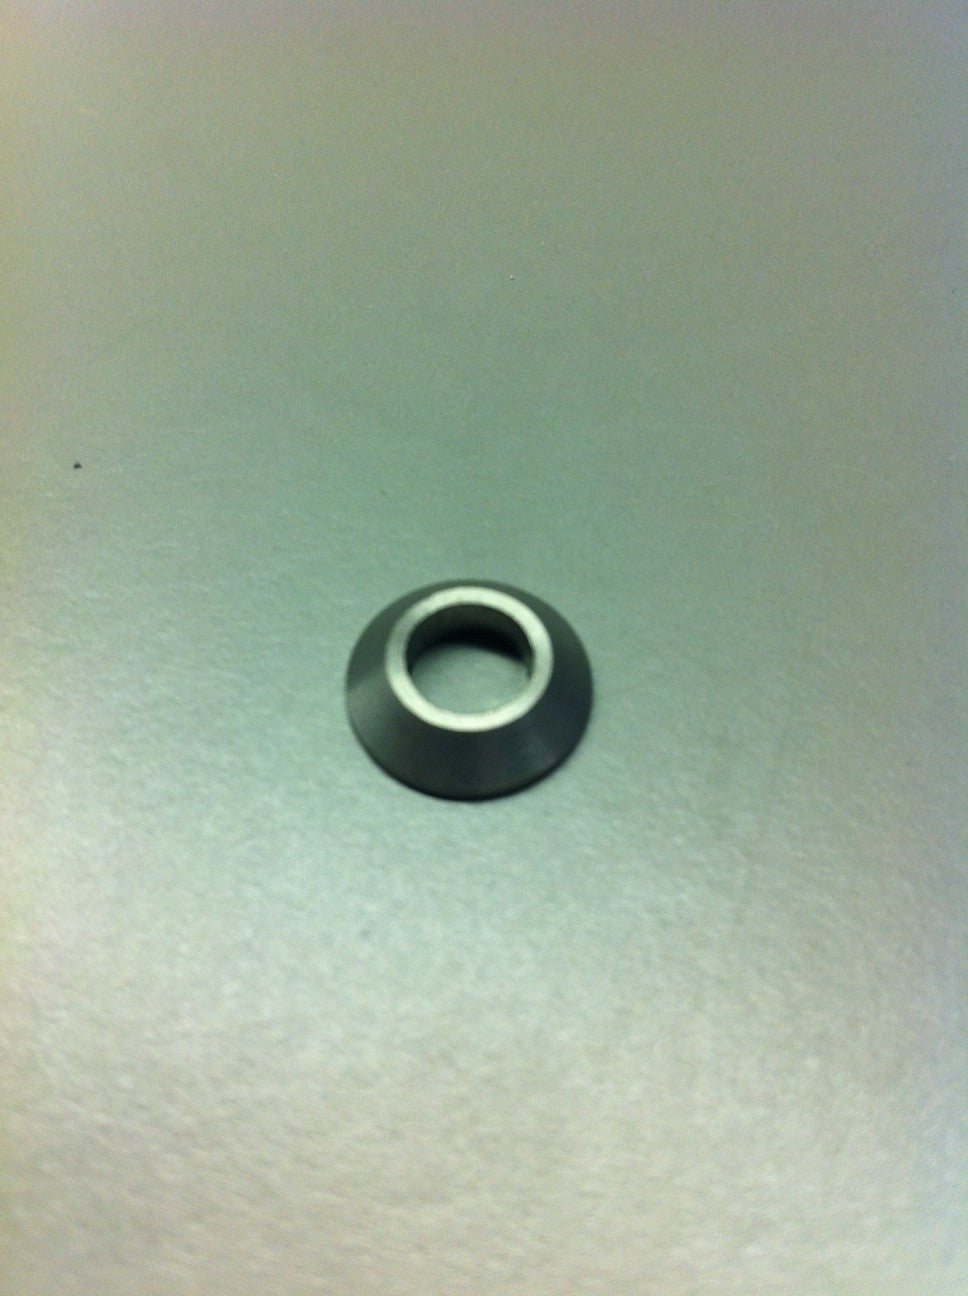 Tapered Washer For Vd Arb Clevis